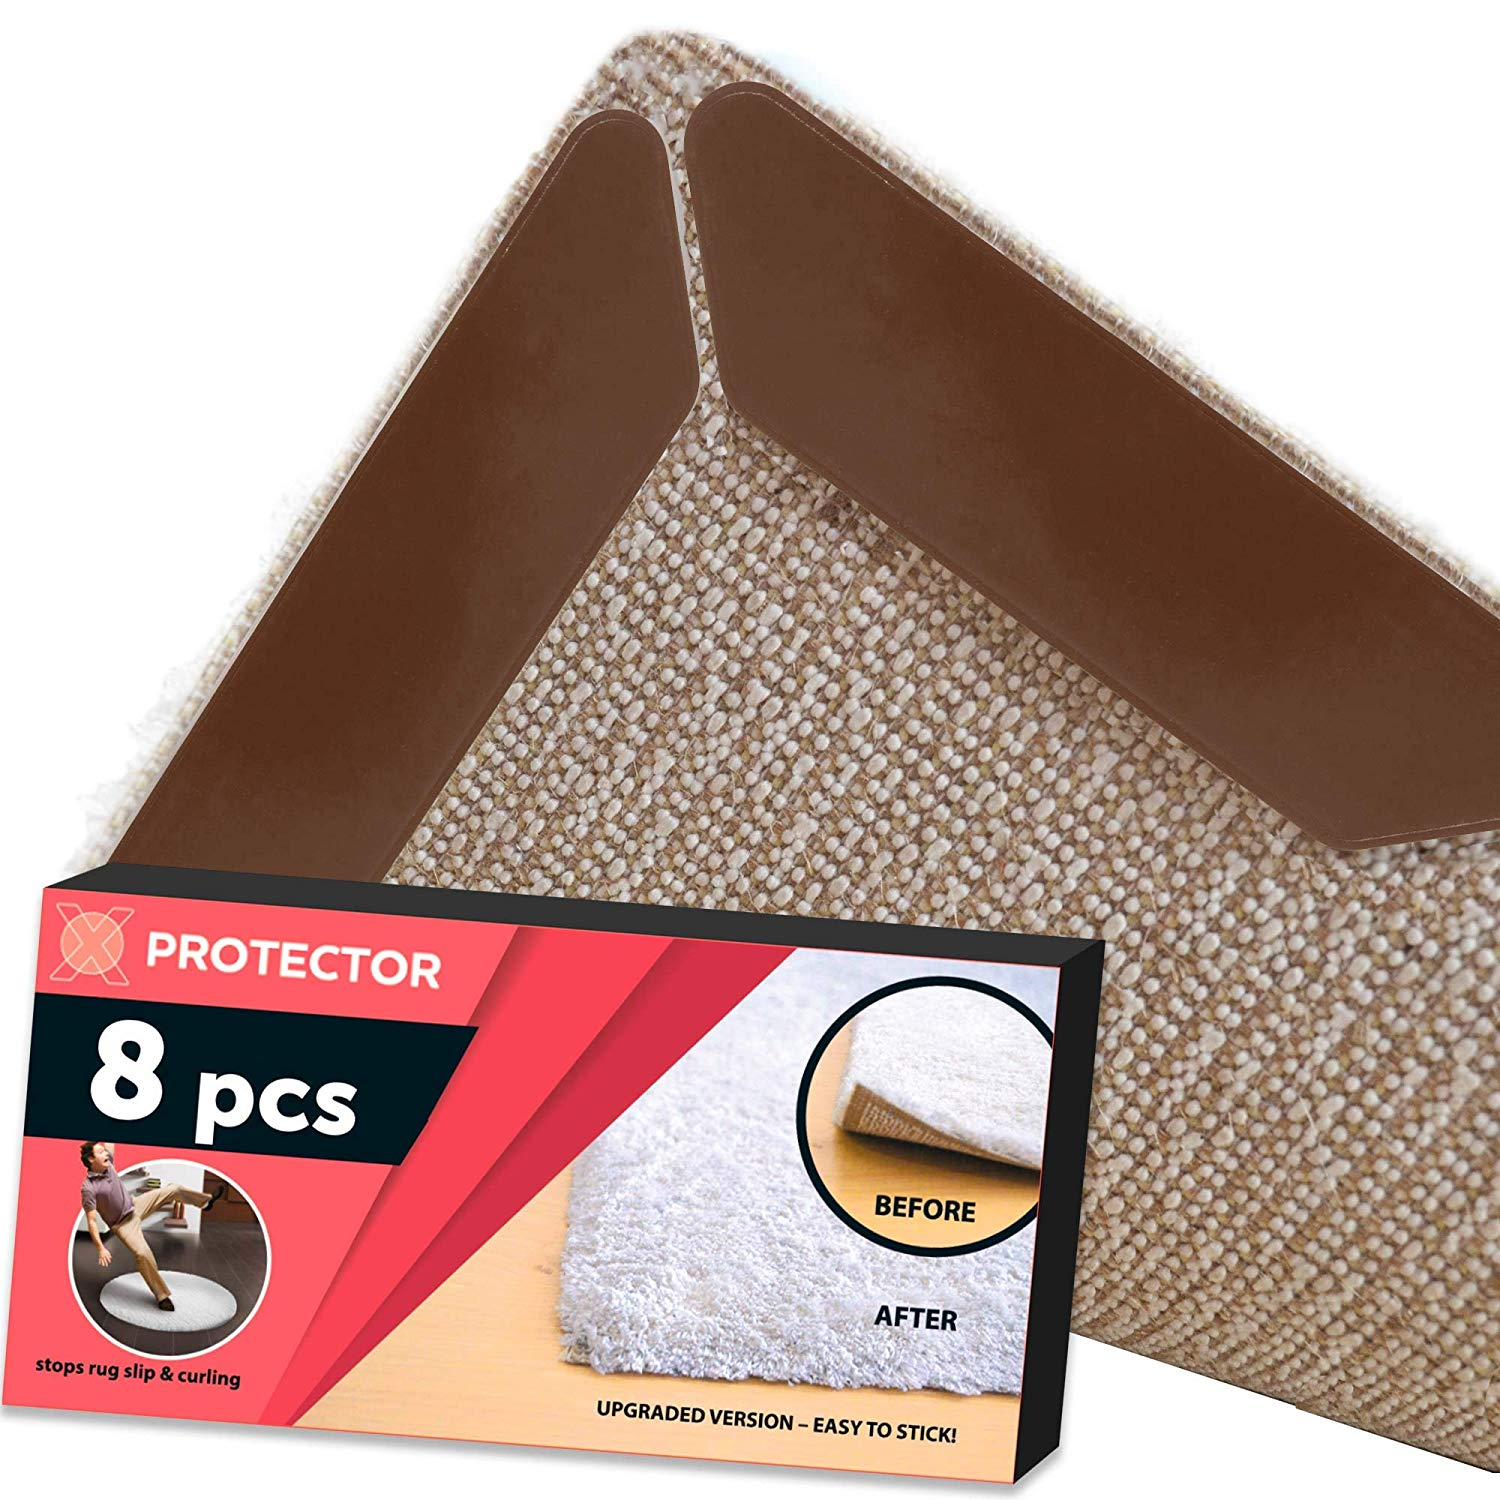 Rug Gripper X-PROTECTOR 8 Pack – Best Rug Grippers - Carpet Tape - Anti Curling Carpet Pad. Keeps Your Rug in Place & Makes Corners Flat. Premium Carpet Gripper – Anti Slip Rug Pad for Rug Non Slip!